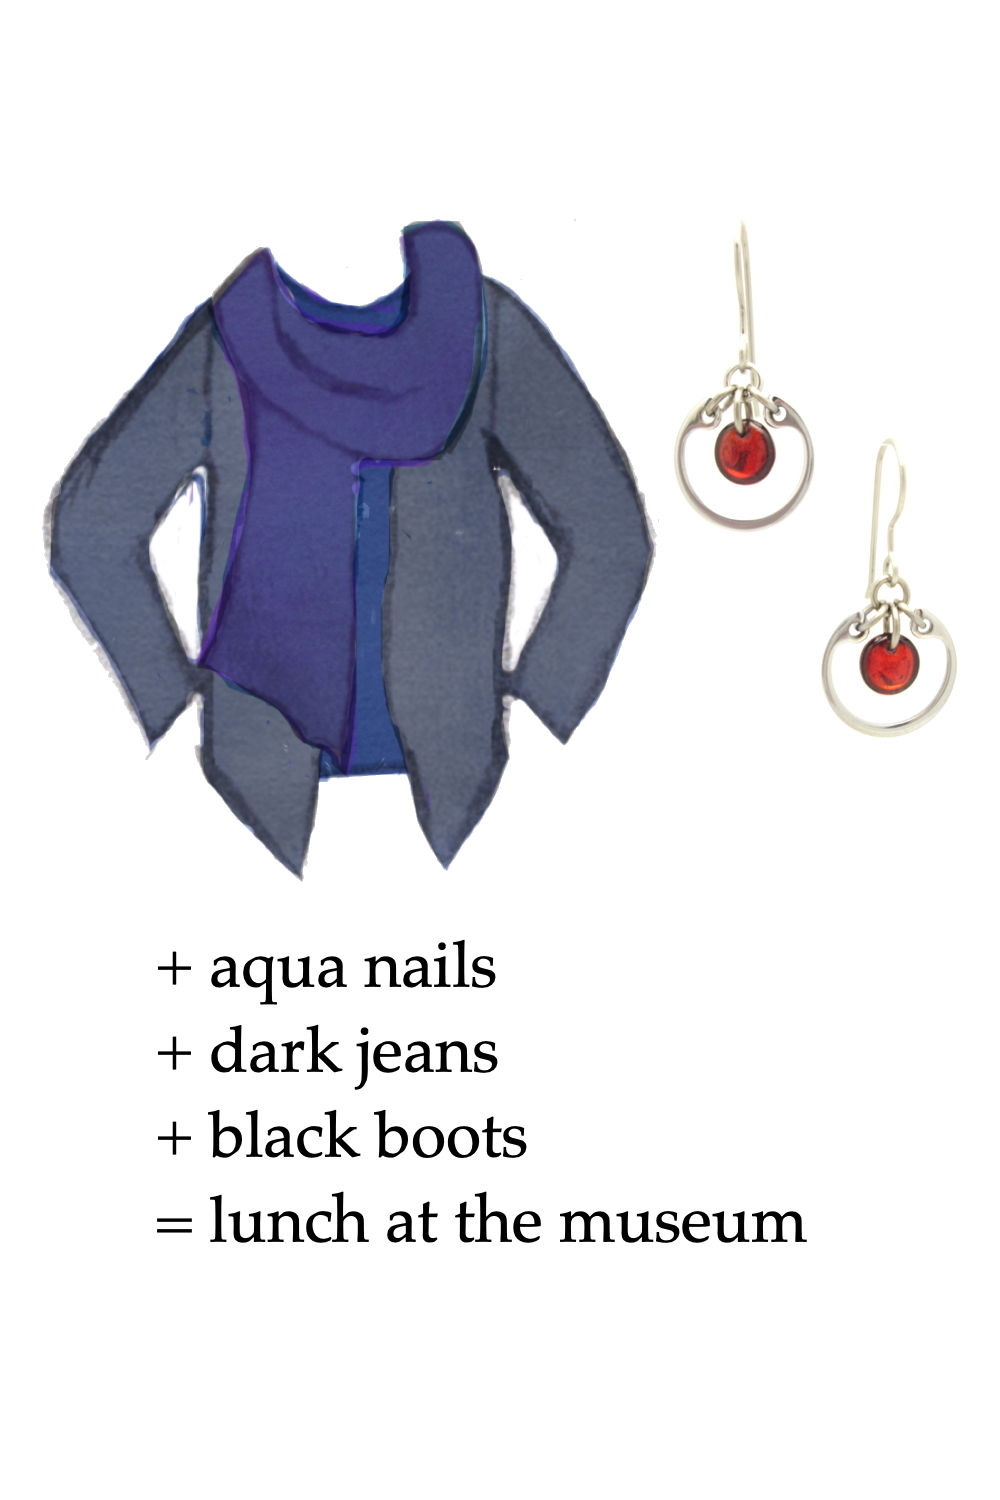 Style sketch of an outfit idea in shades of blue, with a dark blue tee, violet blue scarf, & dusty indigo cardigan, with Wraptillion's small modern circle earrings in red. Text on image reads: + aqua nails + dark jeans + black boots = lunch at the museum